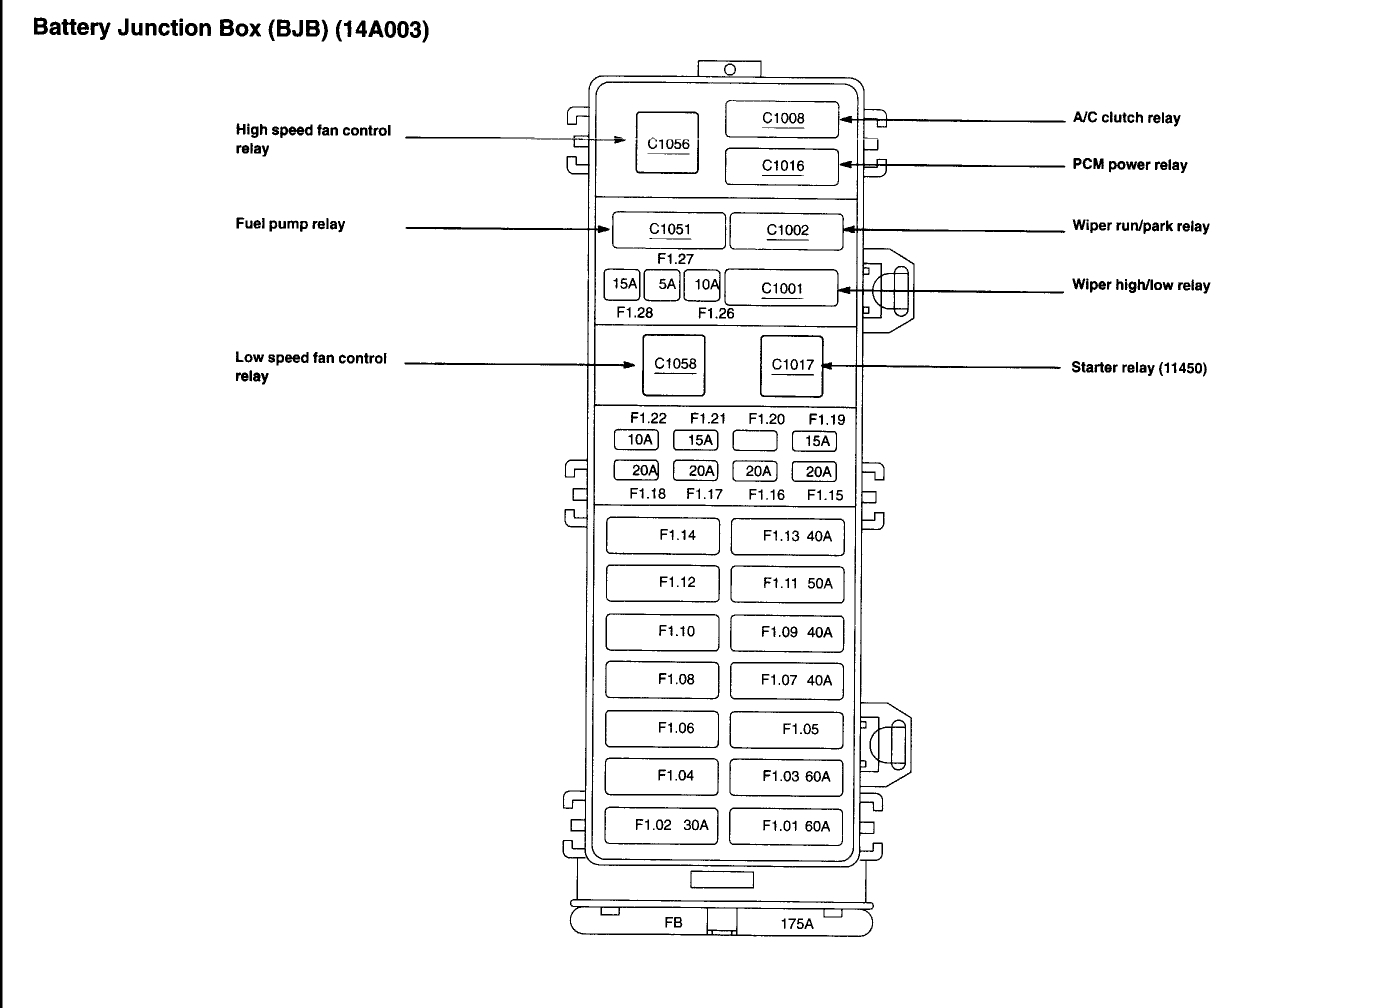 2003 Ford Taurus Fuel Pump Wiring Diagram Diagrams Box 2008 Focus Ses Fuse Relay Location Where Is The And Headlights